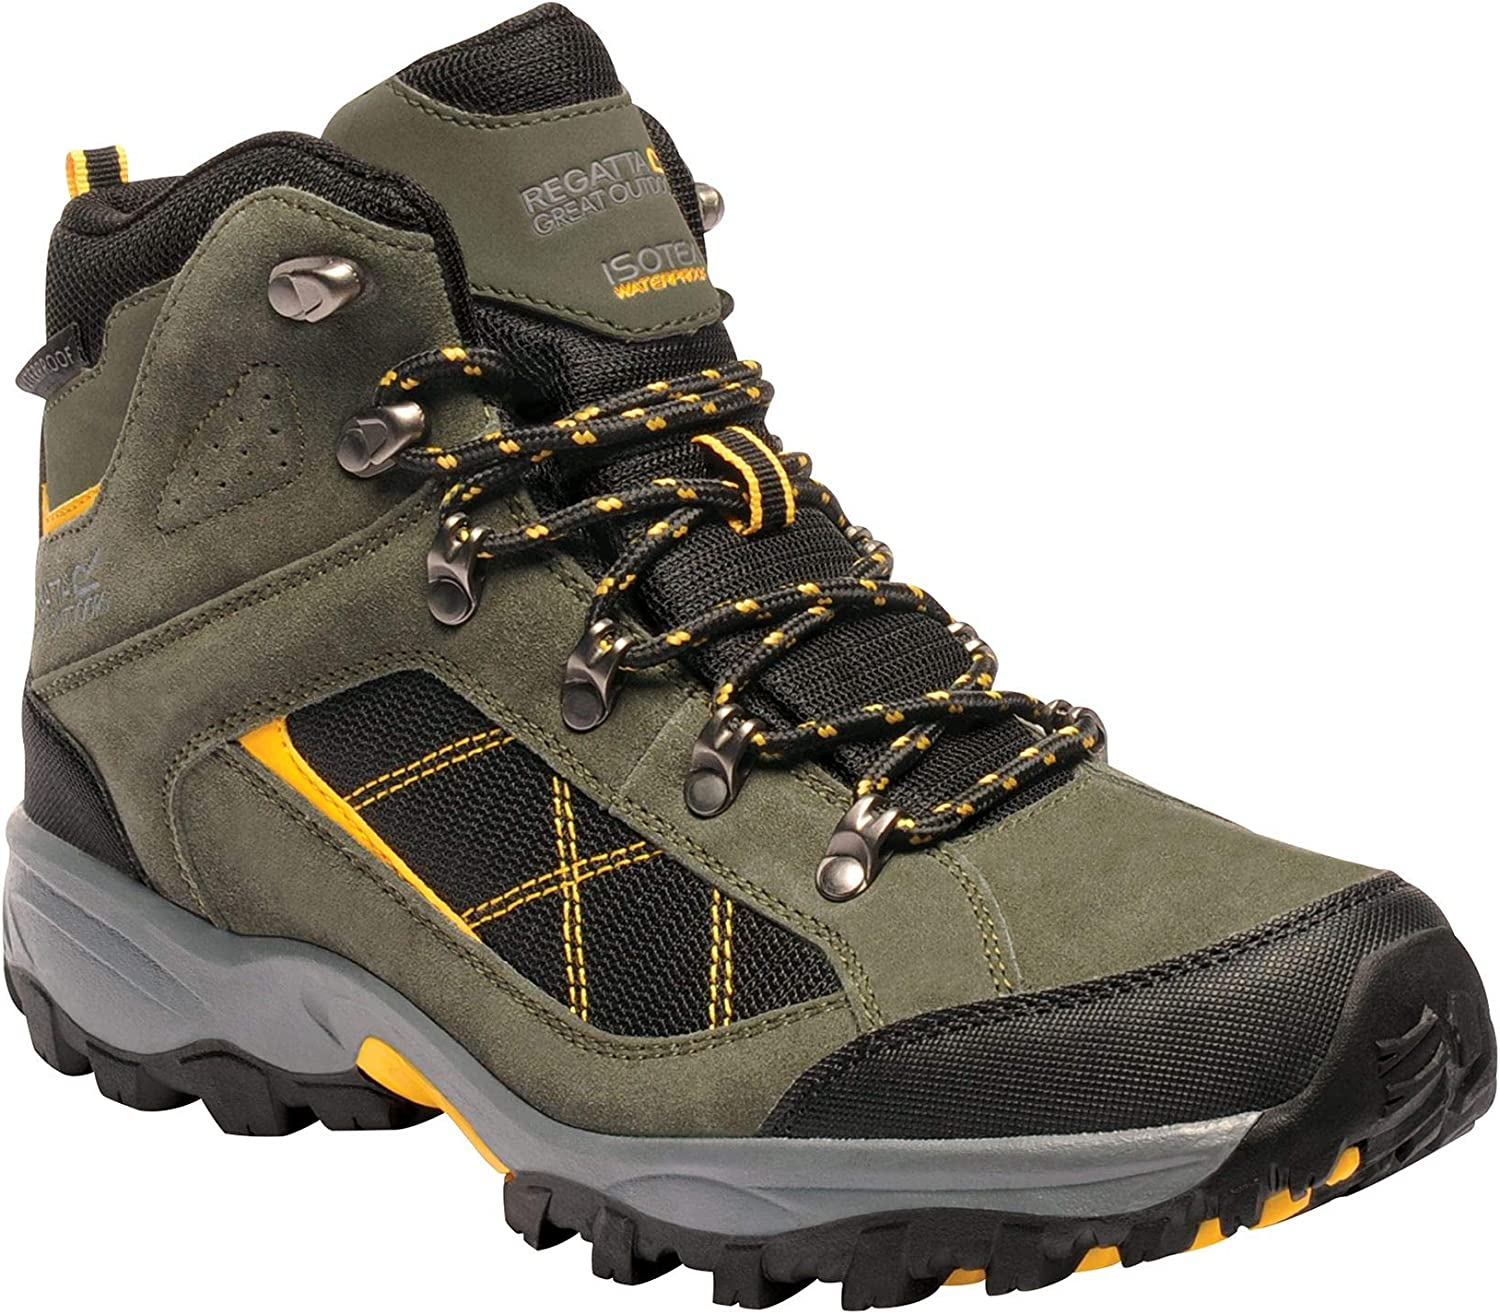 Regatta Great Outdoors Mens Kota Mid Walking Boot Dark Khaki/Gold